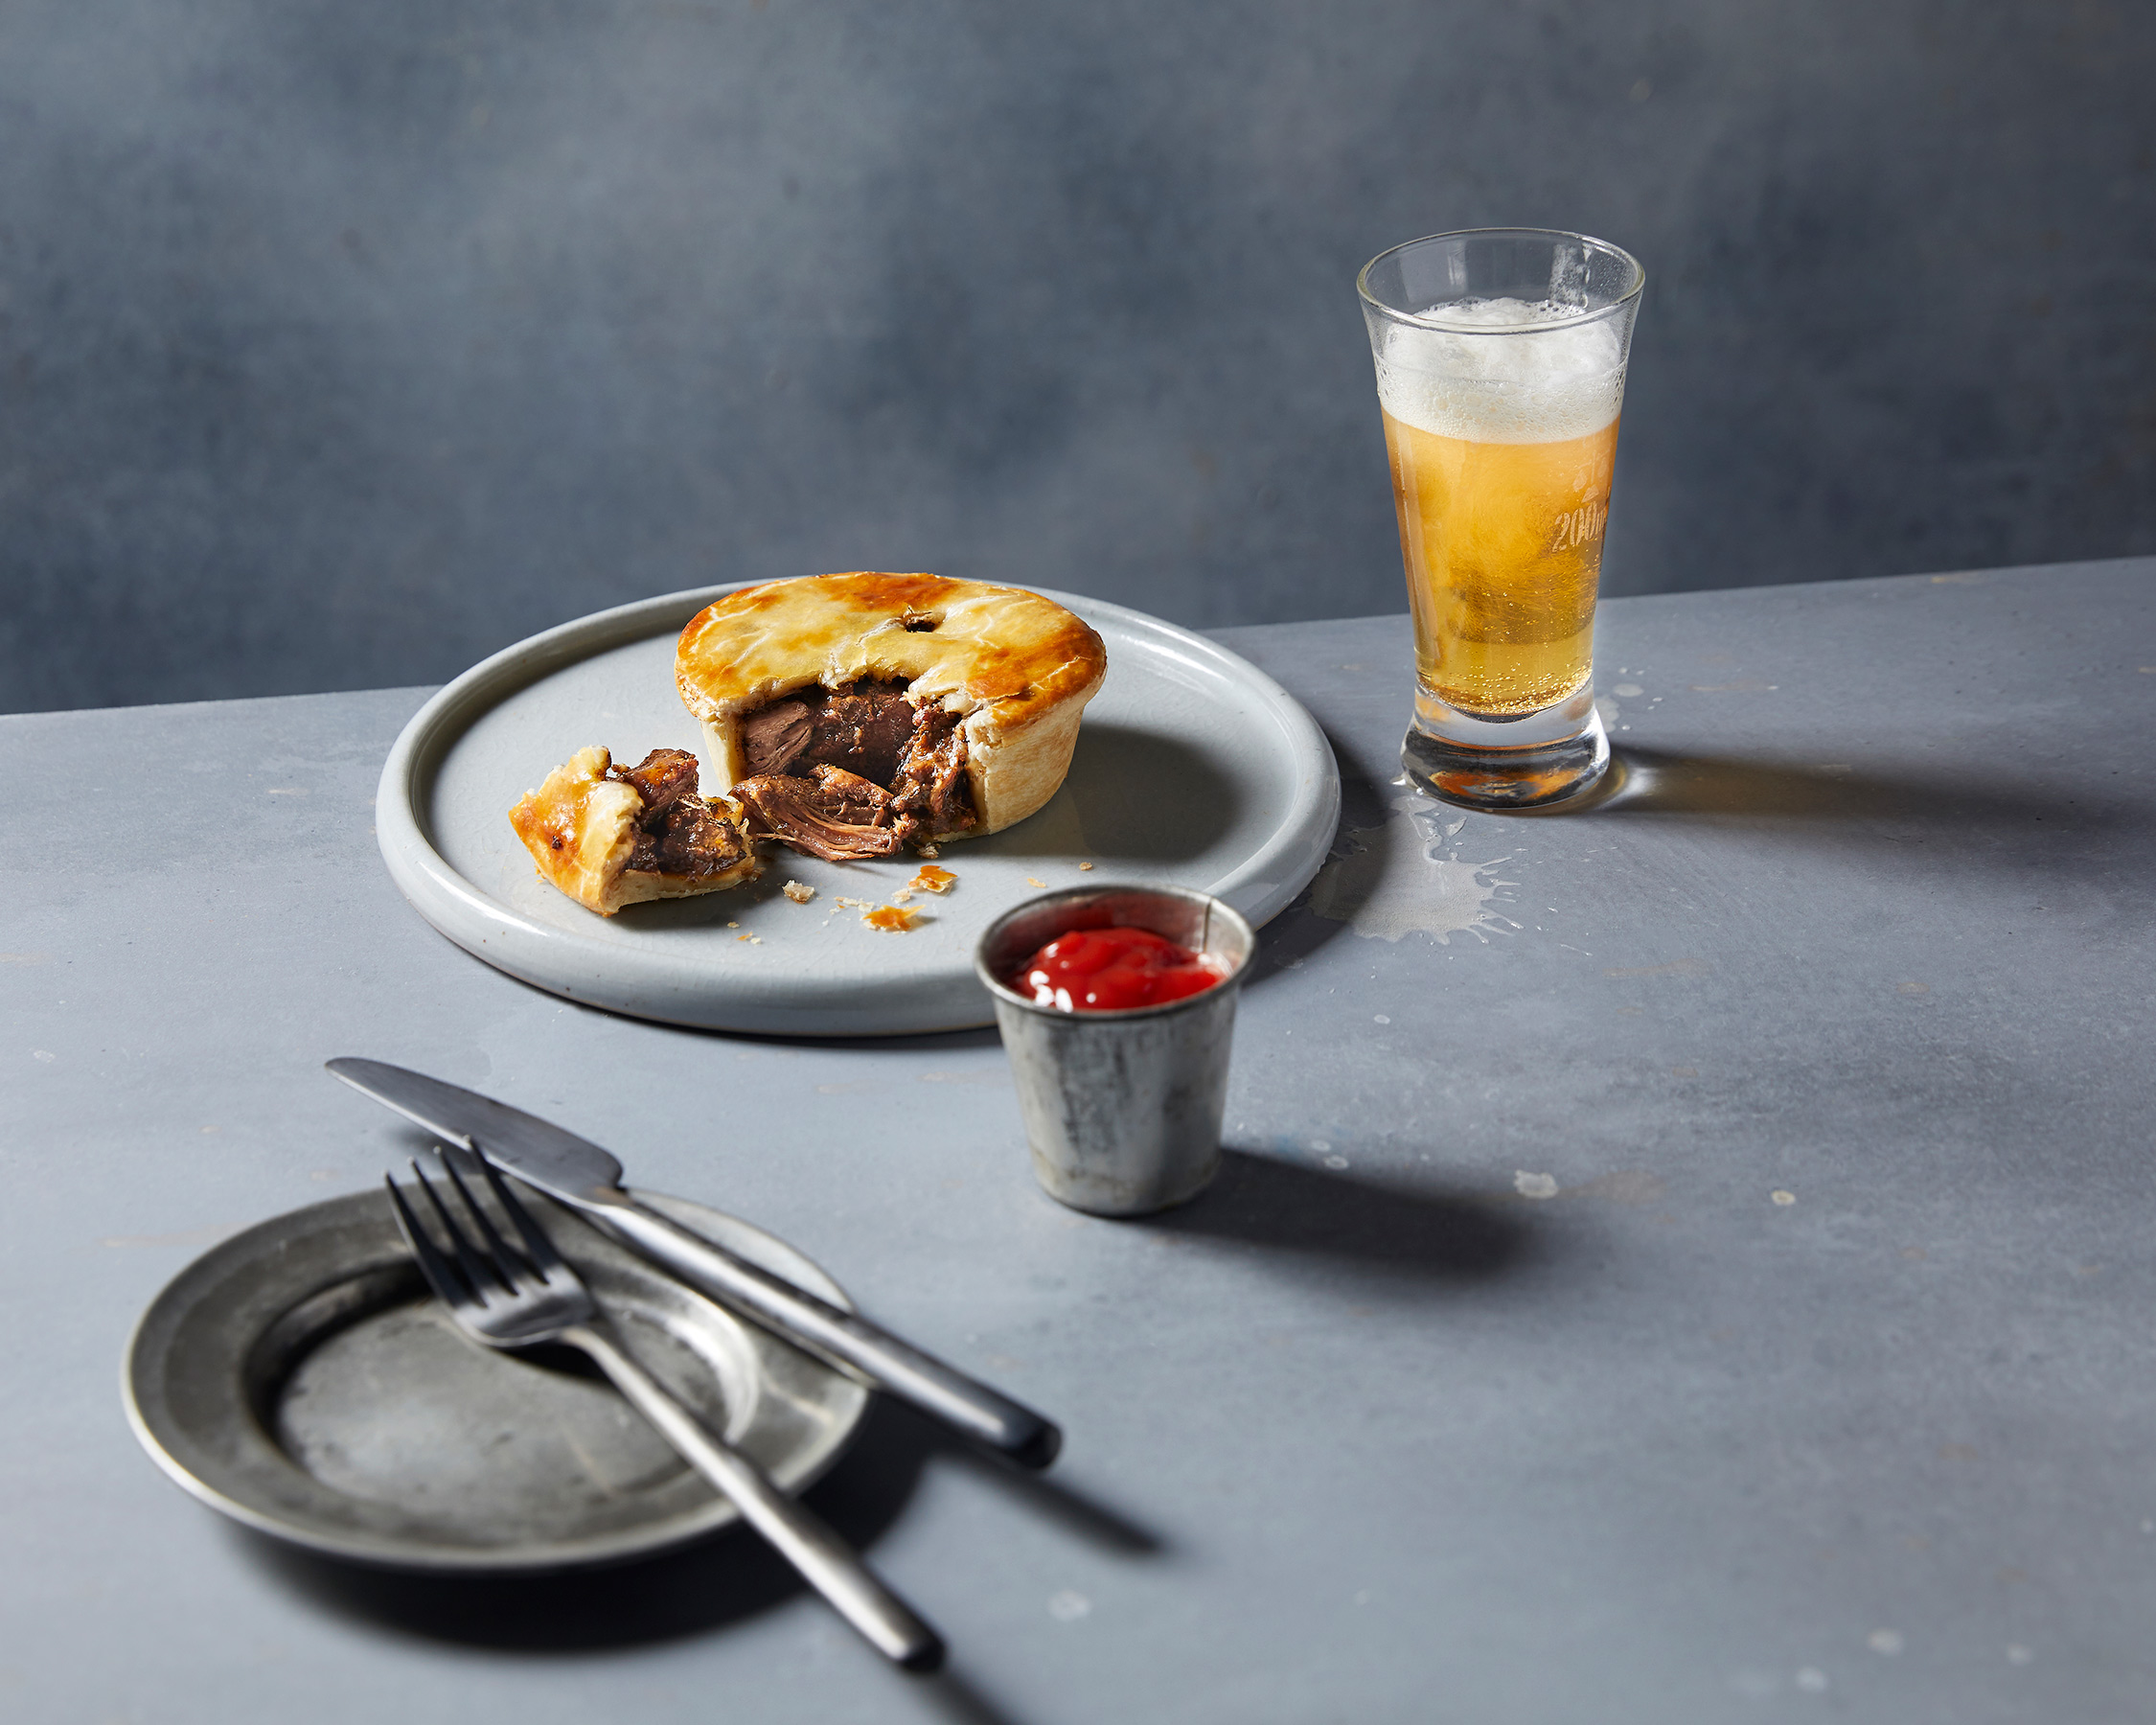 Beef and Red Wine Pie with Beer in a Glass